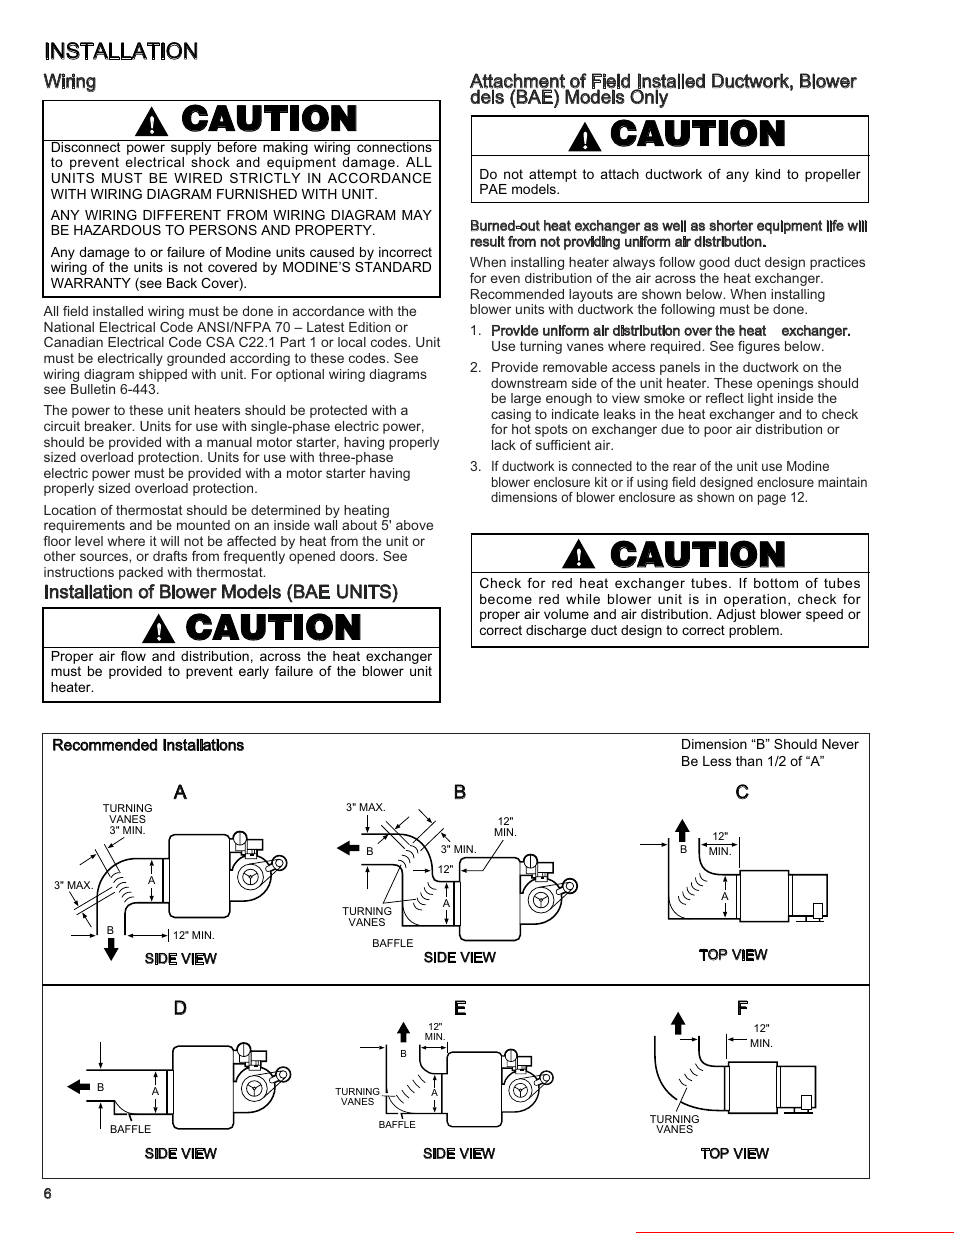 modine manufacturing bae page6?resize=665%2C861 wiring diagram modine pdp 50 wiring diagram images  at soozxer.org